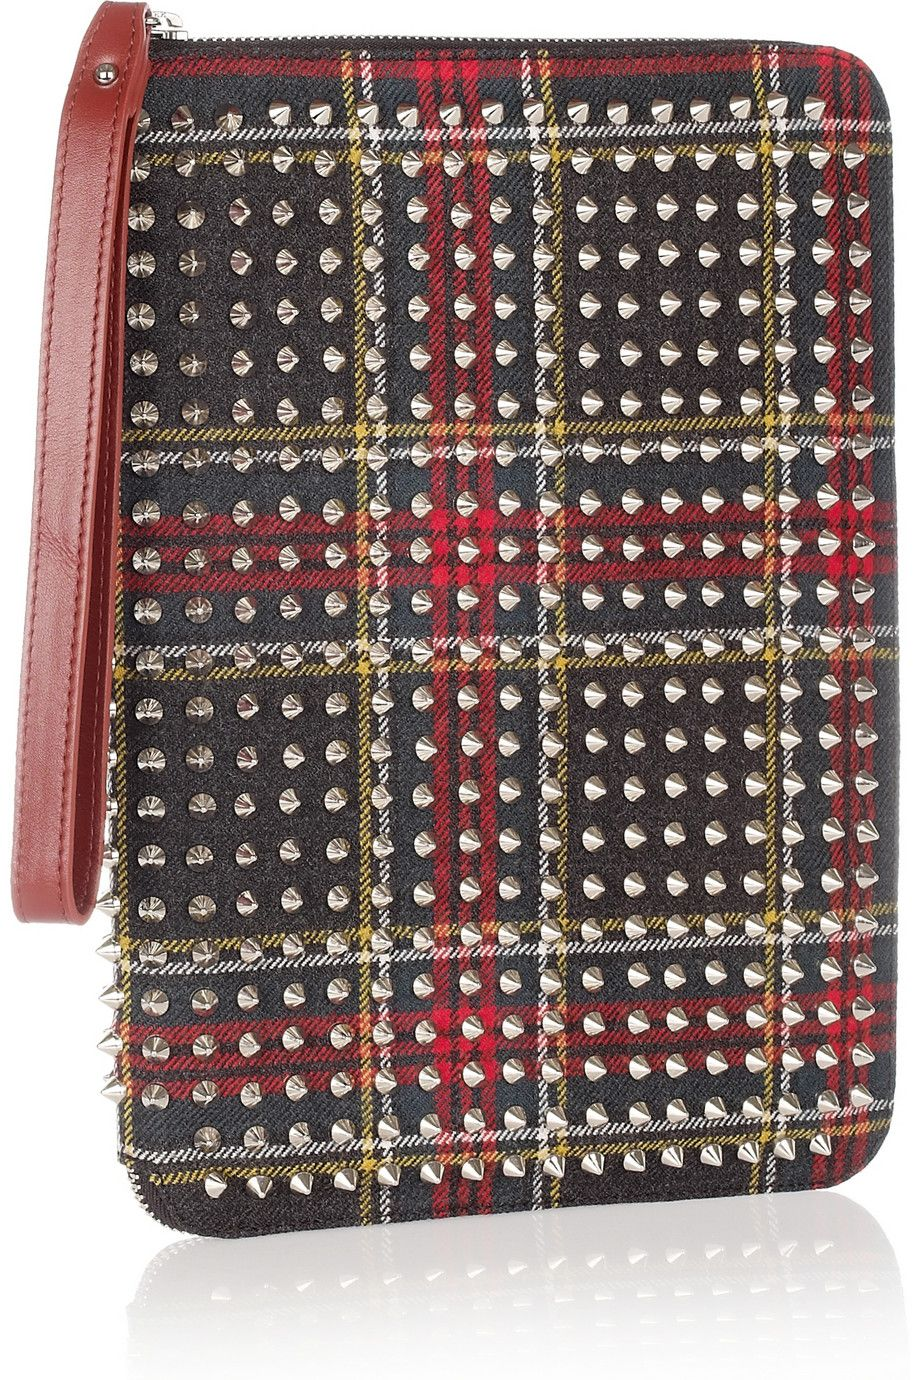 64cfbe688e2 Christian Louboutin Cris spiked twill iPad case. Love. | Fashion and ...